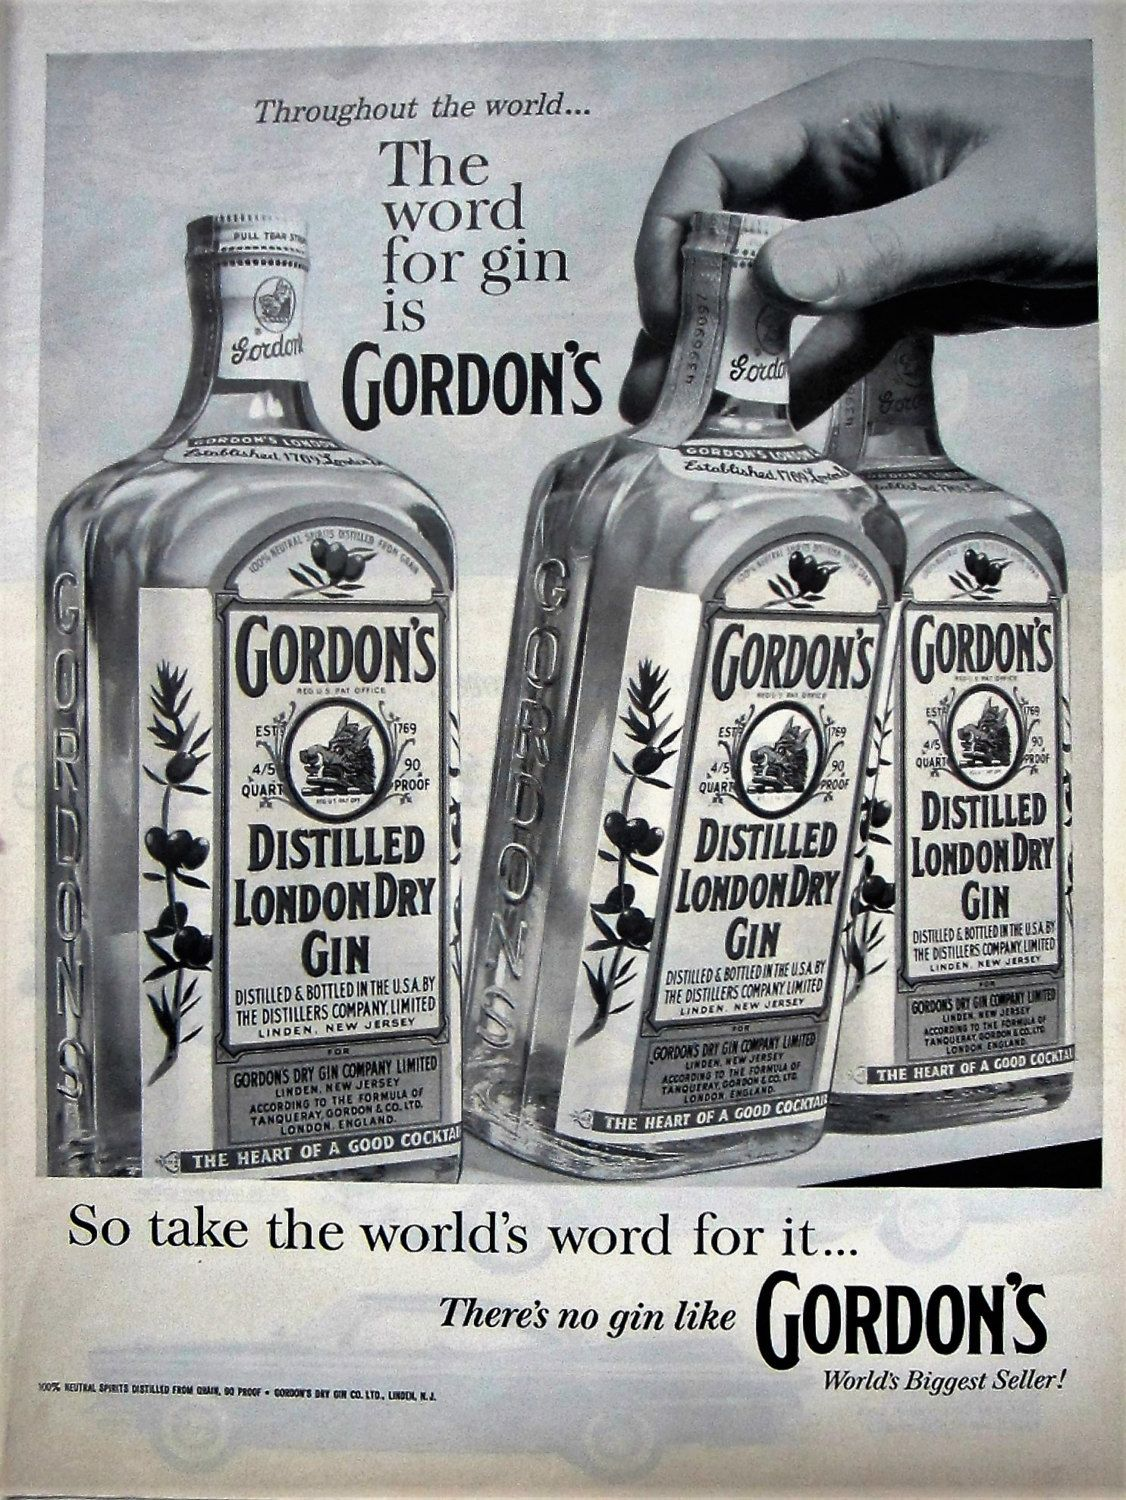 1960 Gordons Gin Vintage Advertisement Bar Wall Art Man Cave Decor Game Room Wall Hanging Original Magazine Print Ad Alcohol Ephem Gin Bottles Gordon S Gin Gin